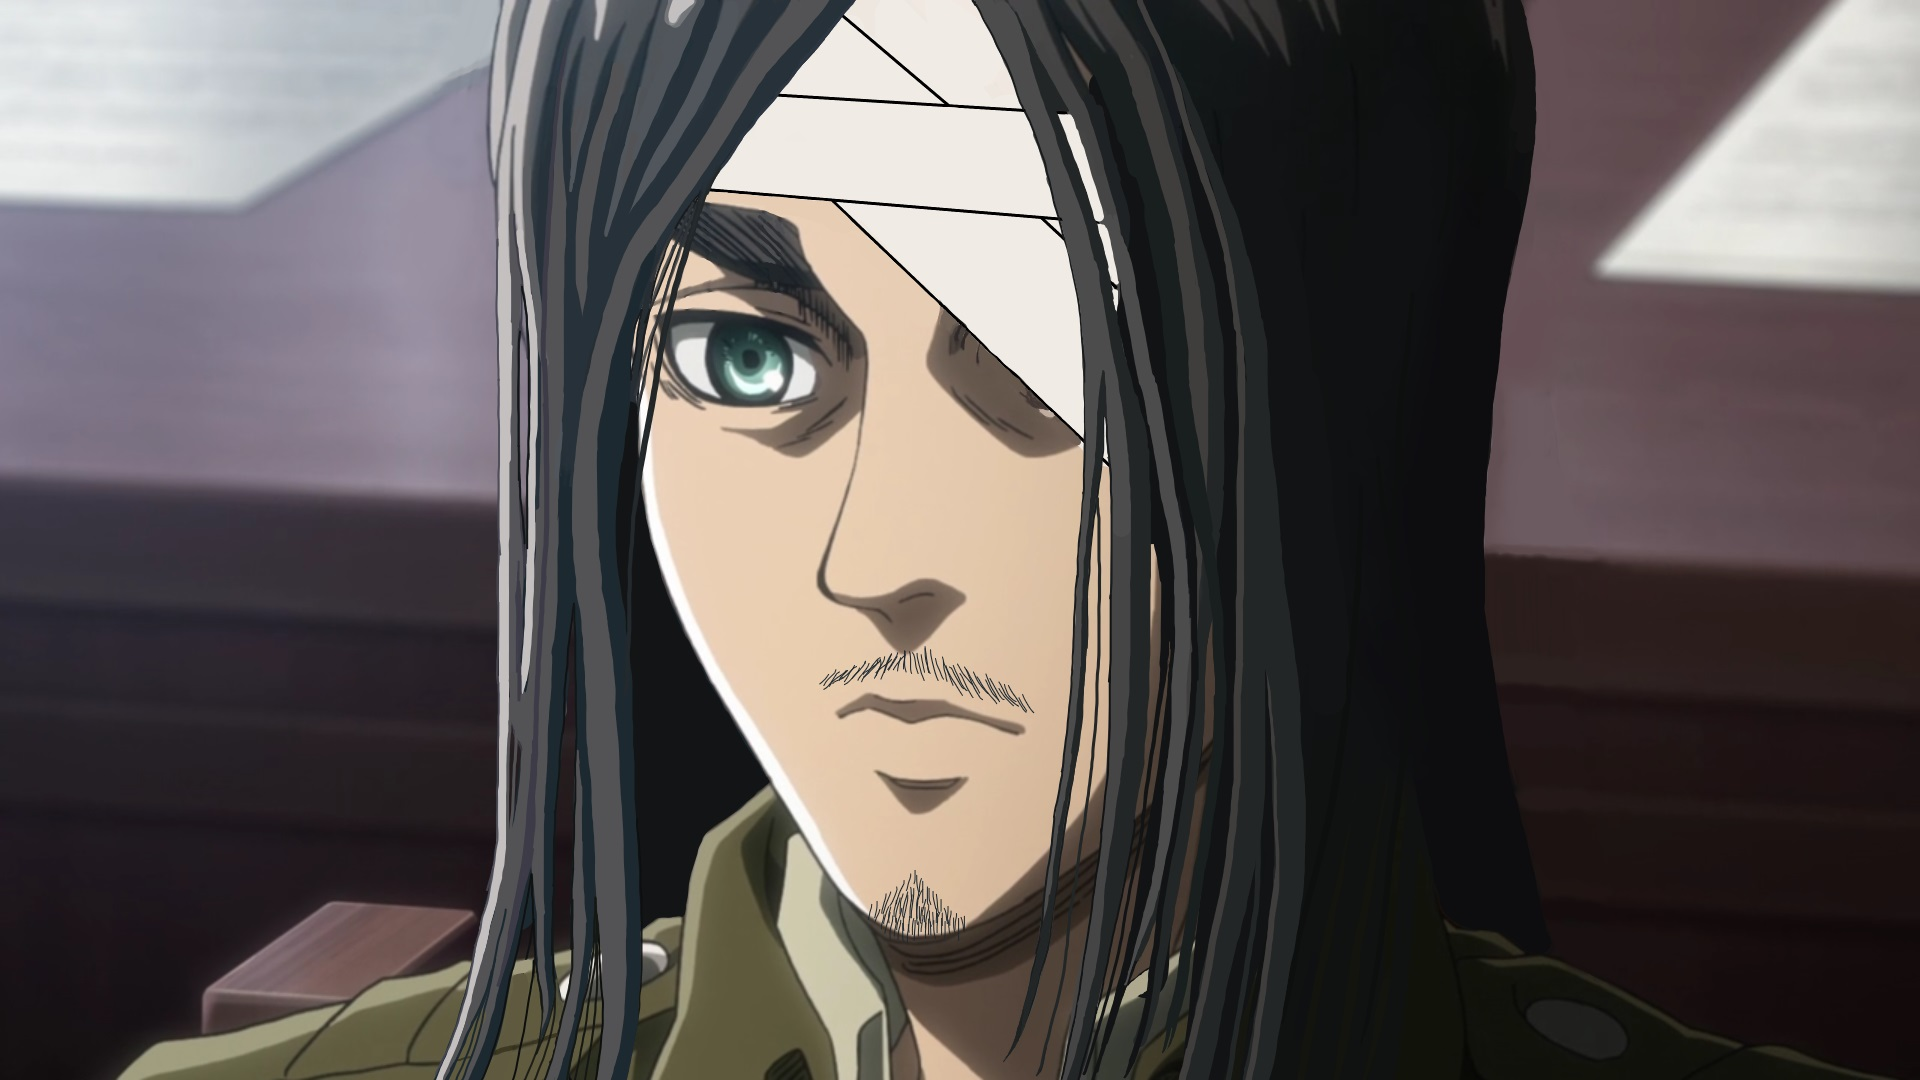 Attack On Titan Chapter 129 Delayed New Release Date Of Shingeki No Kyojin The Eagle Eye